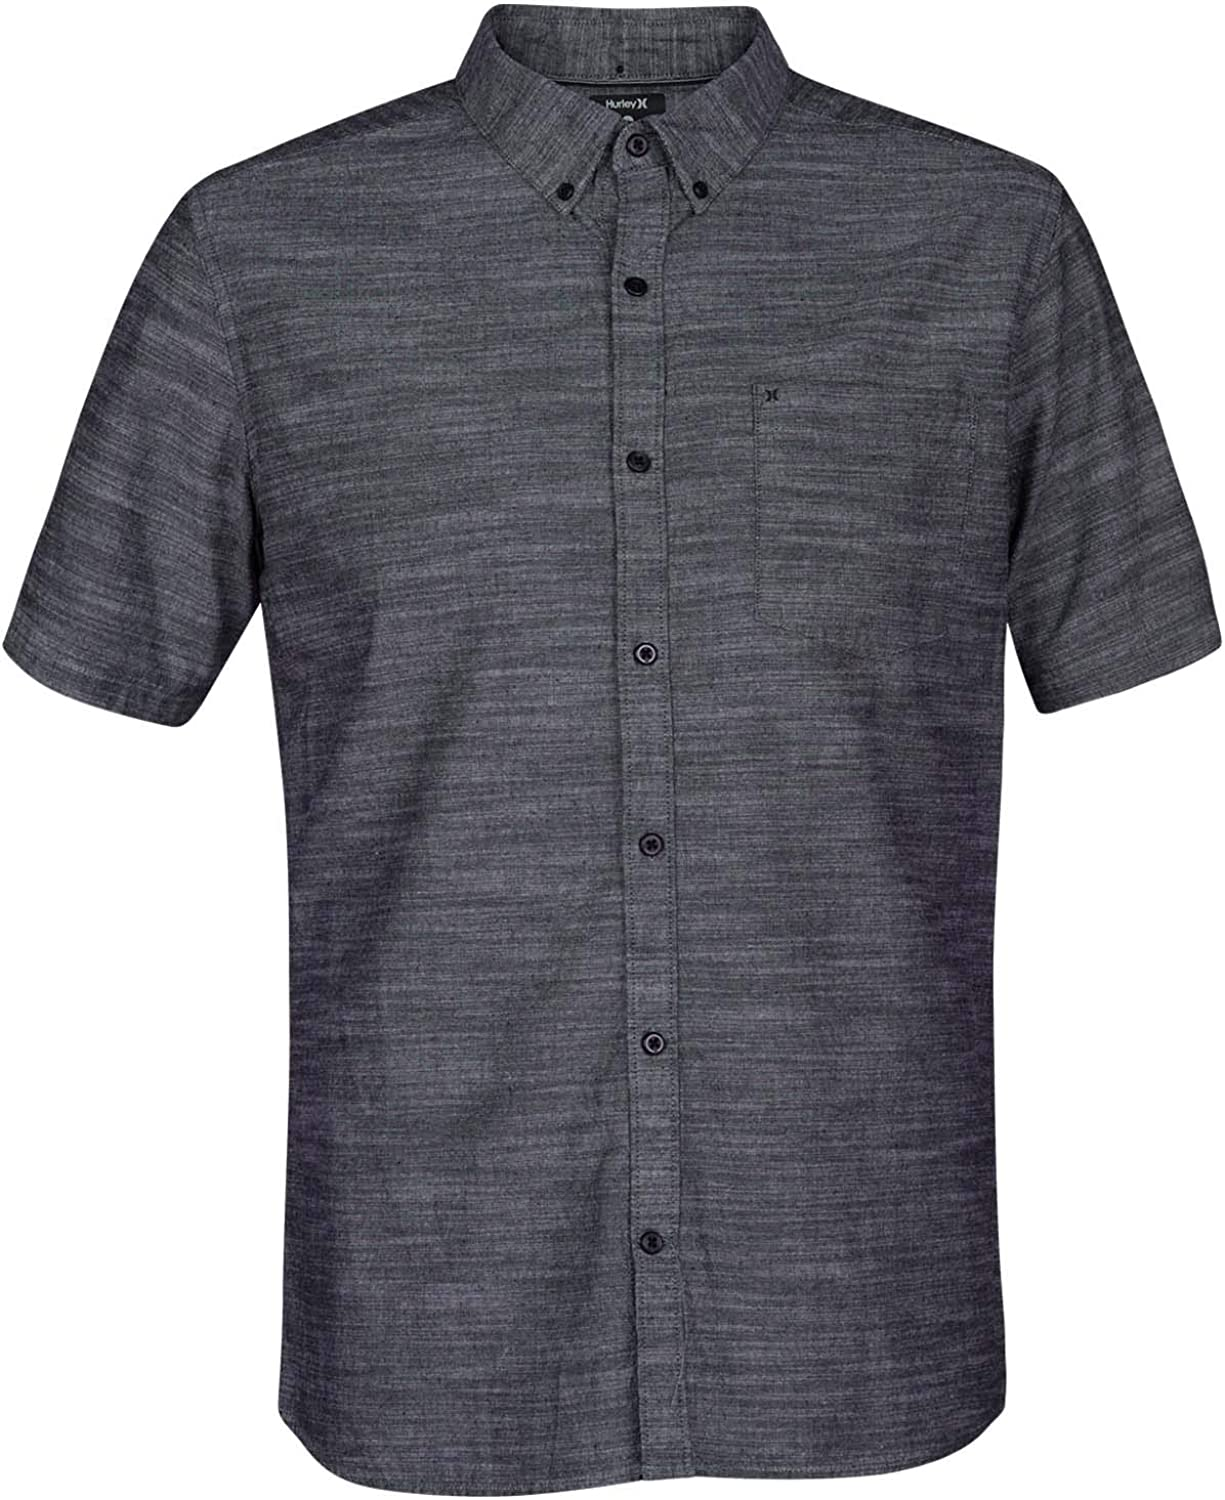 Hurley Men's One & Only Textured Short Sleeve Button Up: Clothing